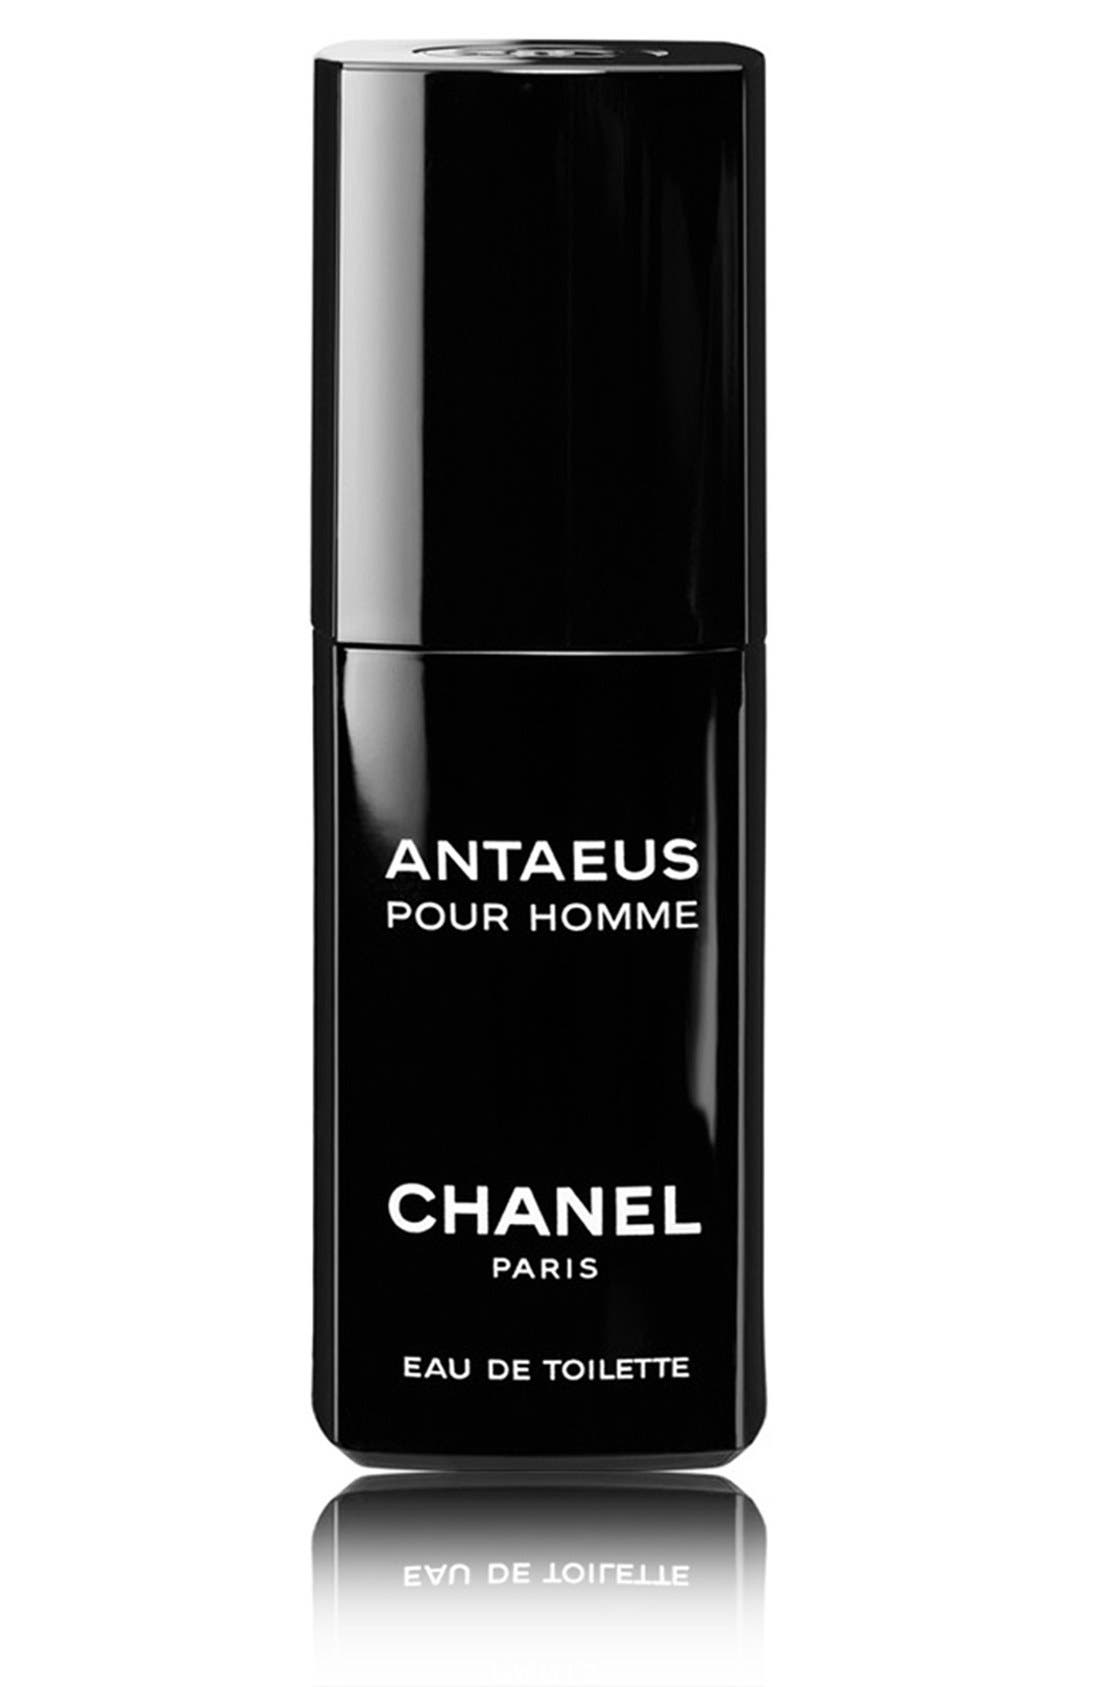 CHANEL ANTAEUS Eau de Toilette Spray